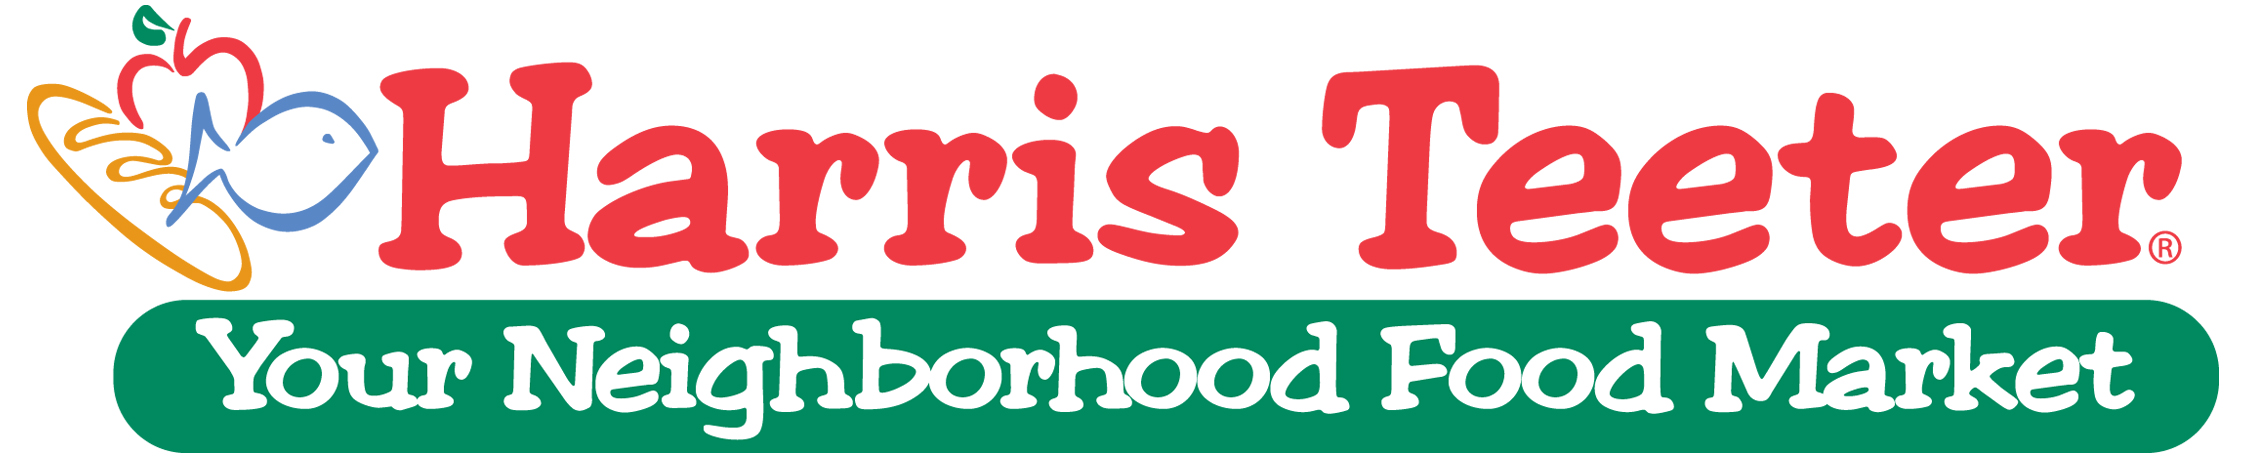 Harris Teeter Logo_hires.jpg